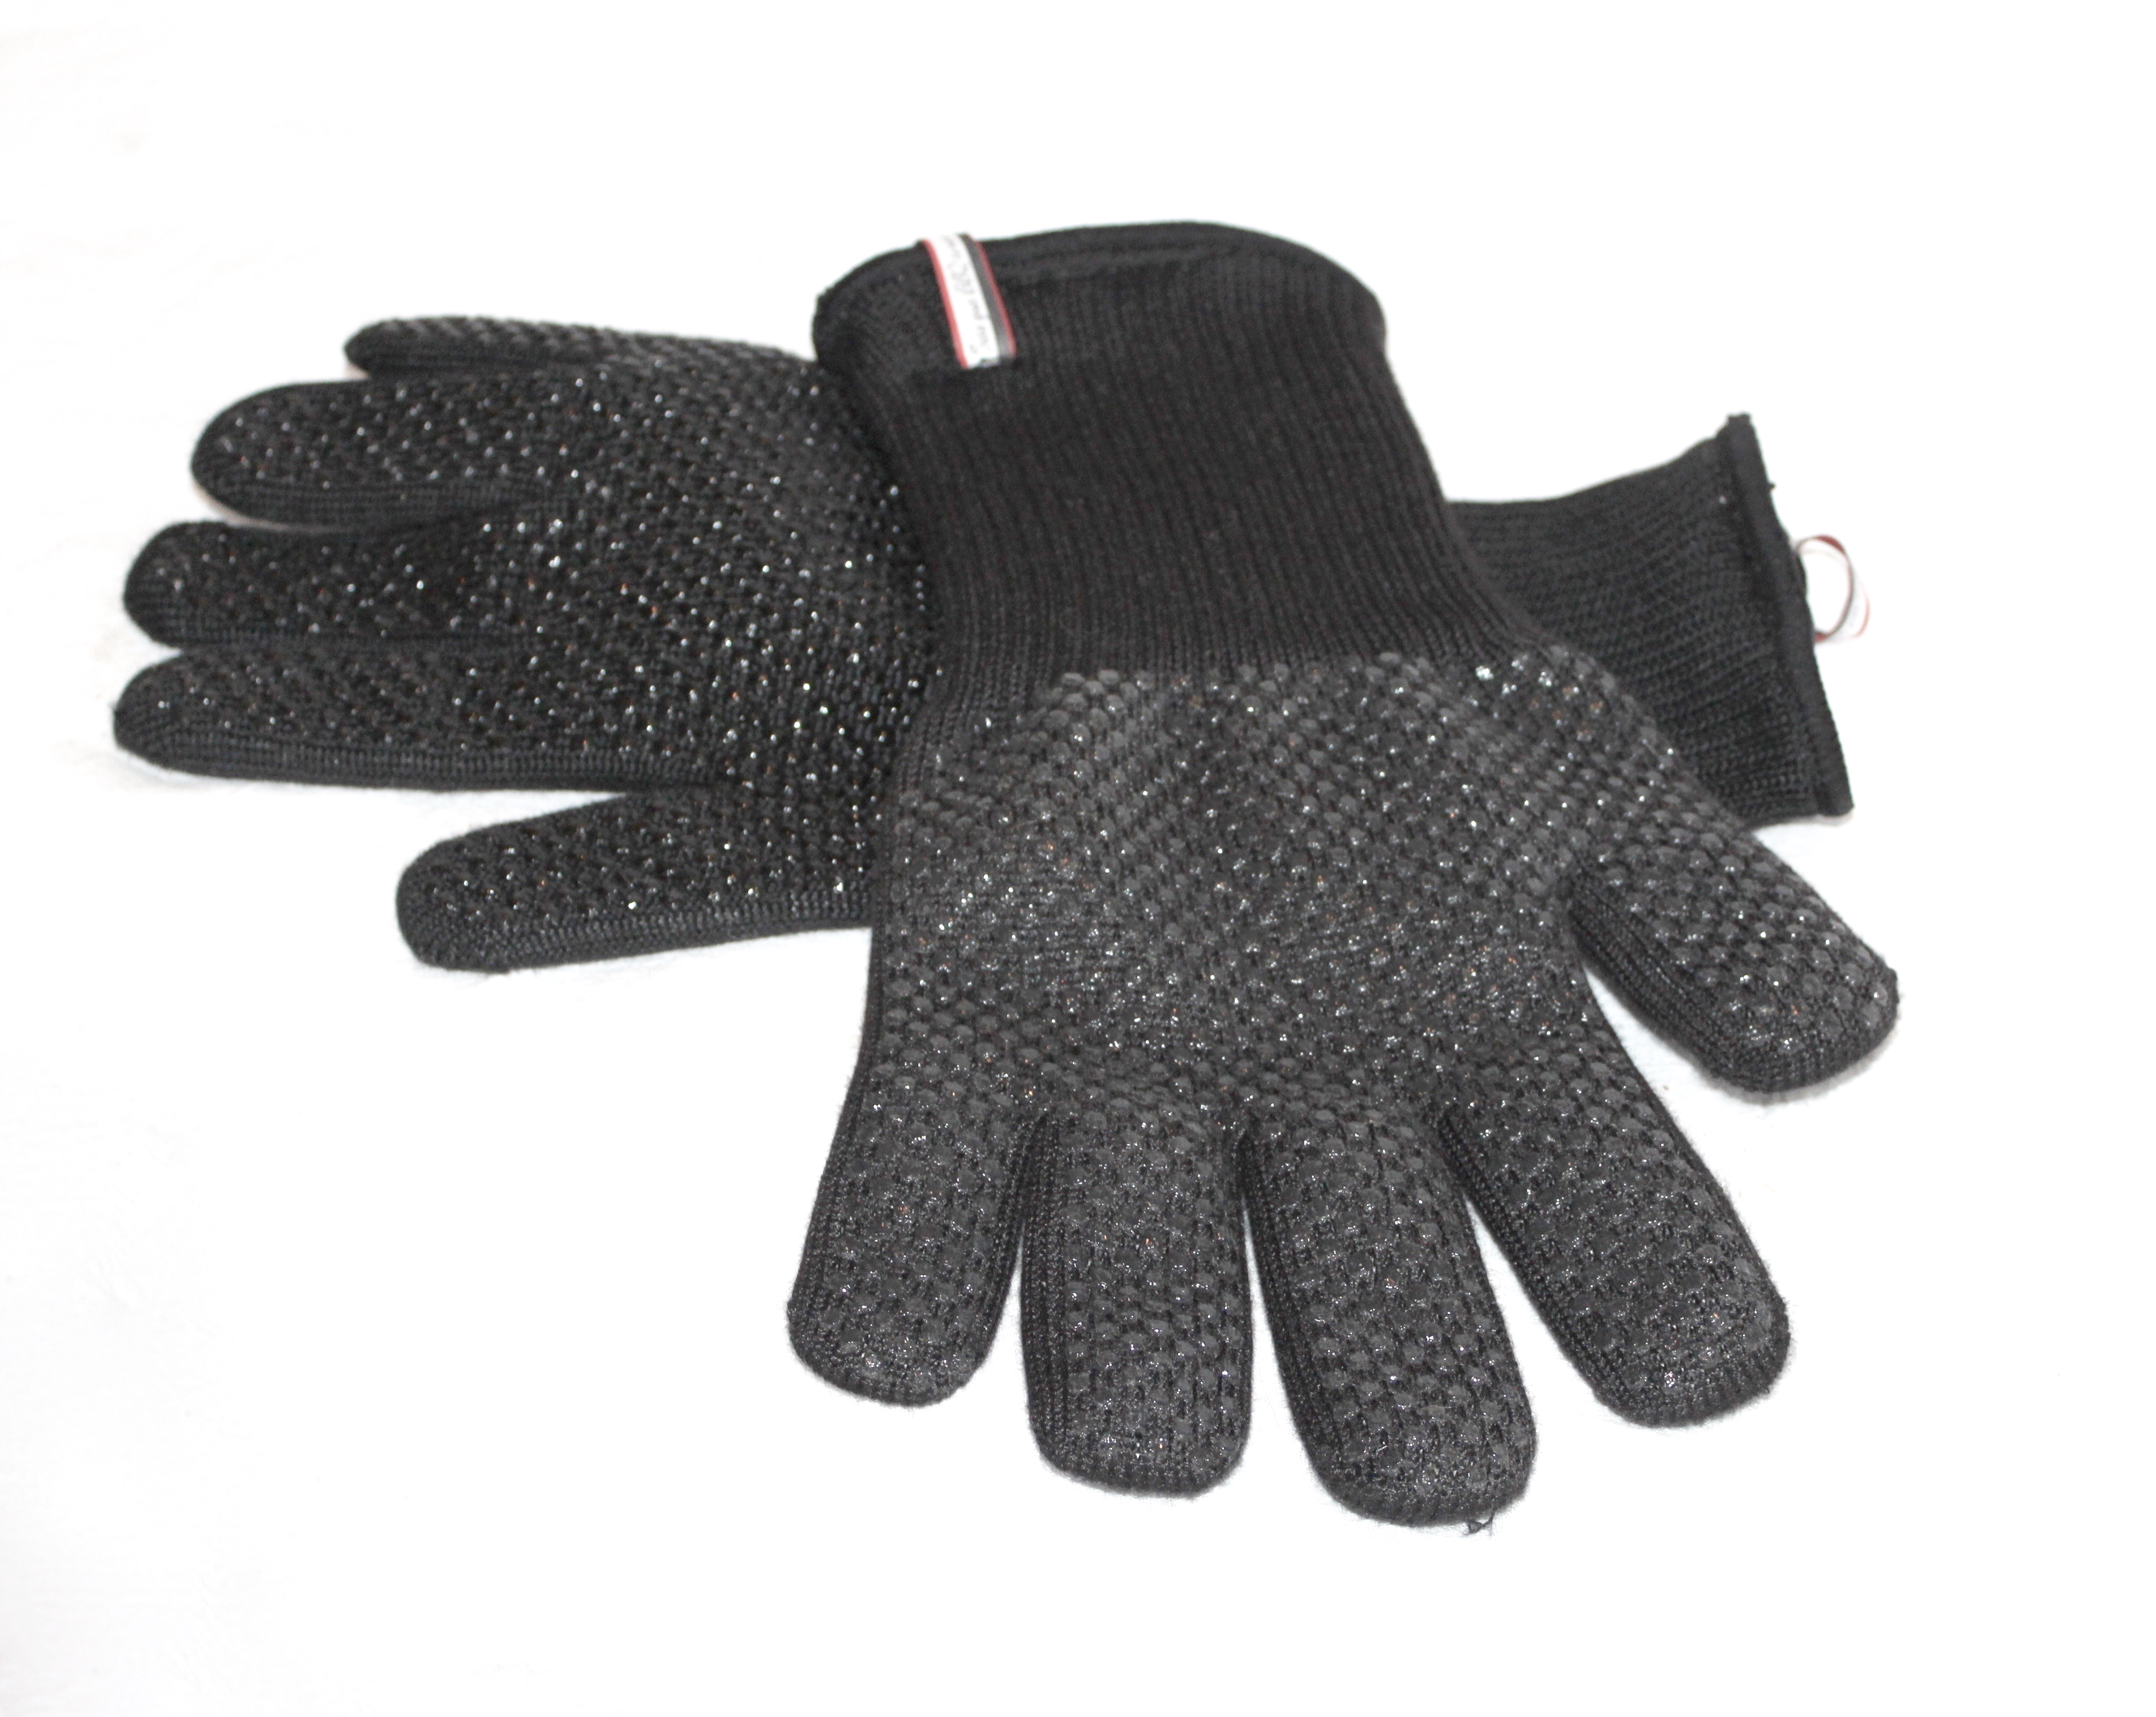 Kamadohouse High Temperature Grill Gloves